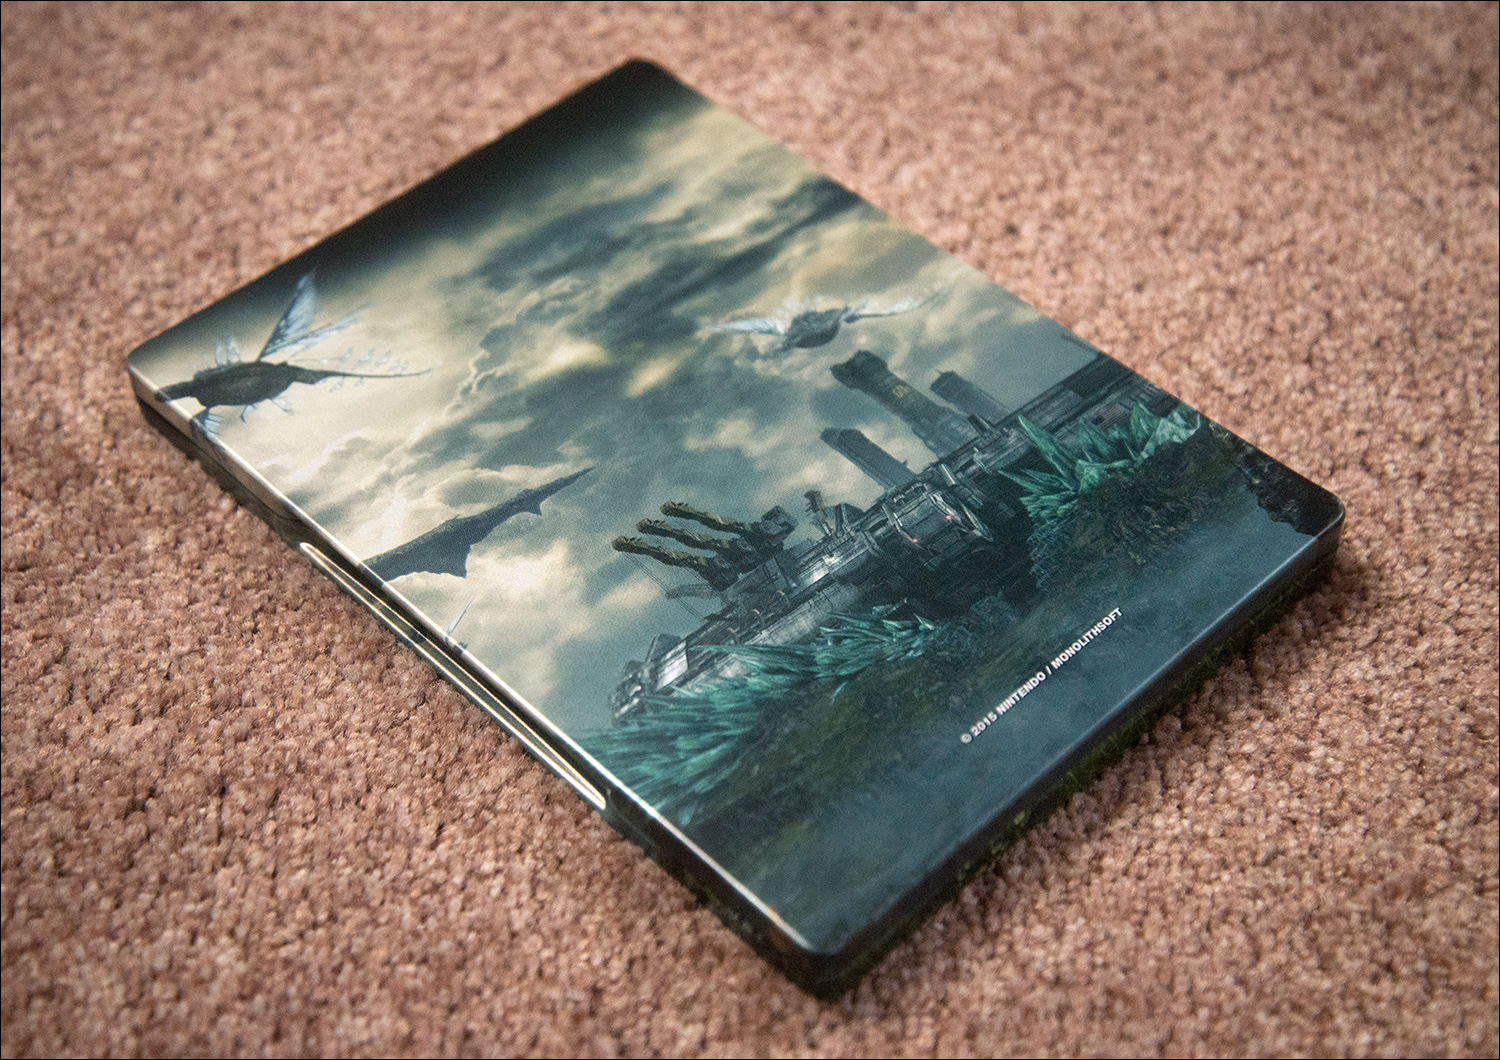 Xenoblade-Chronicles-X-Limited-Edition-Steelbook-Back